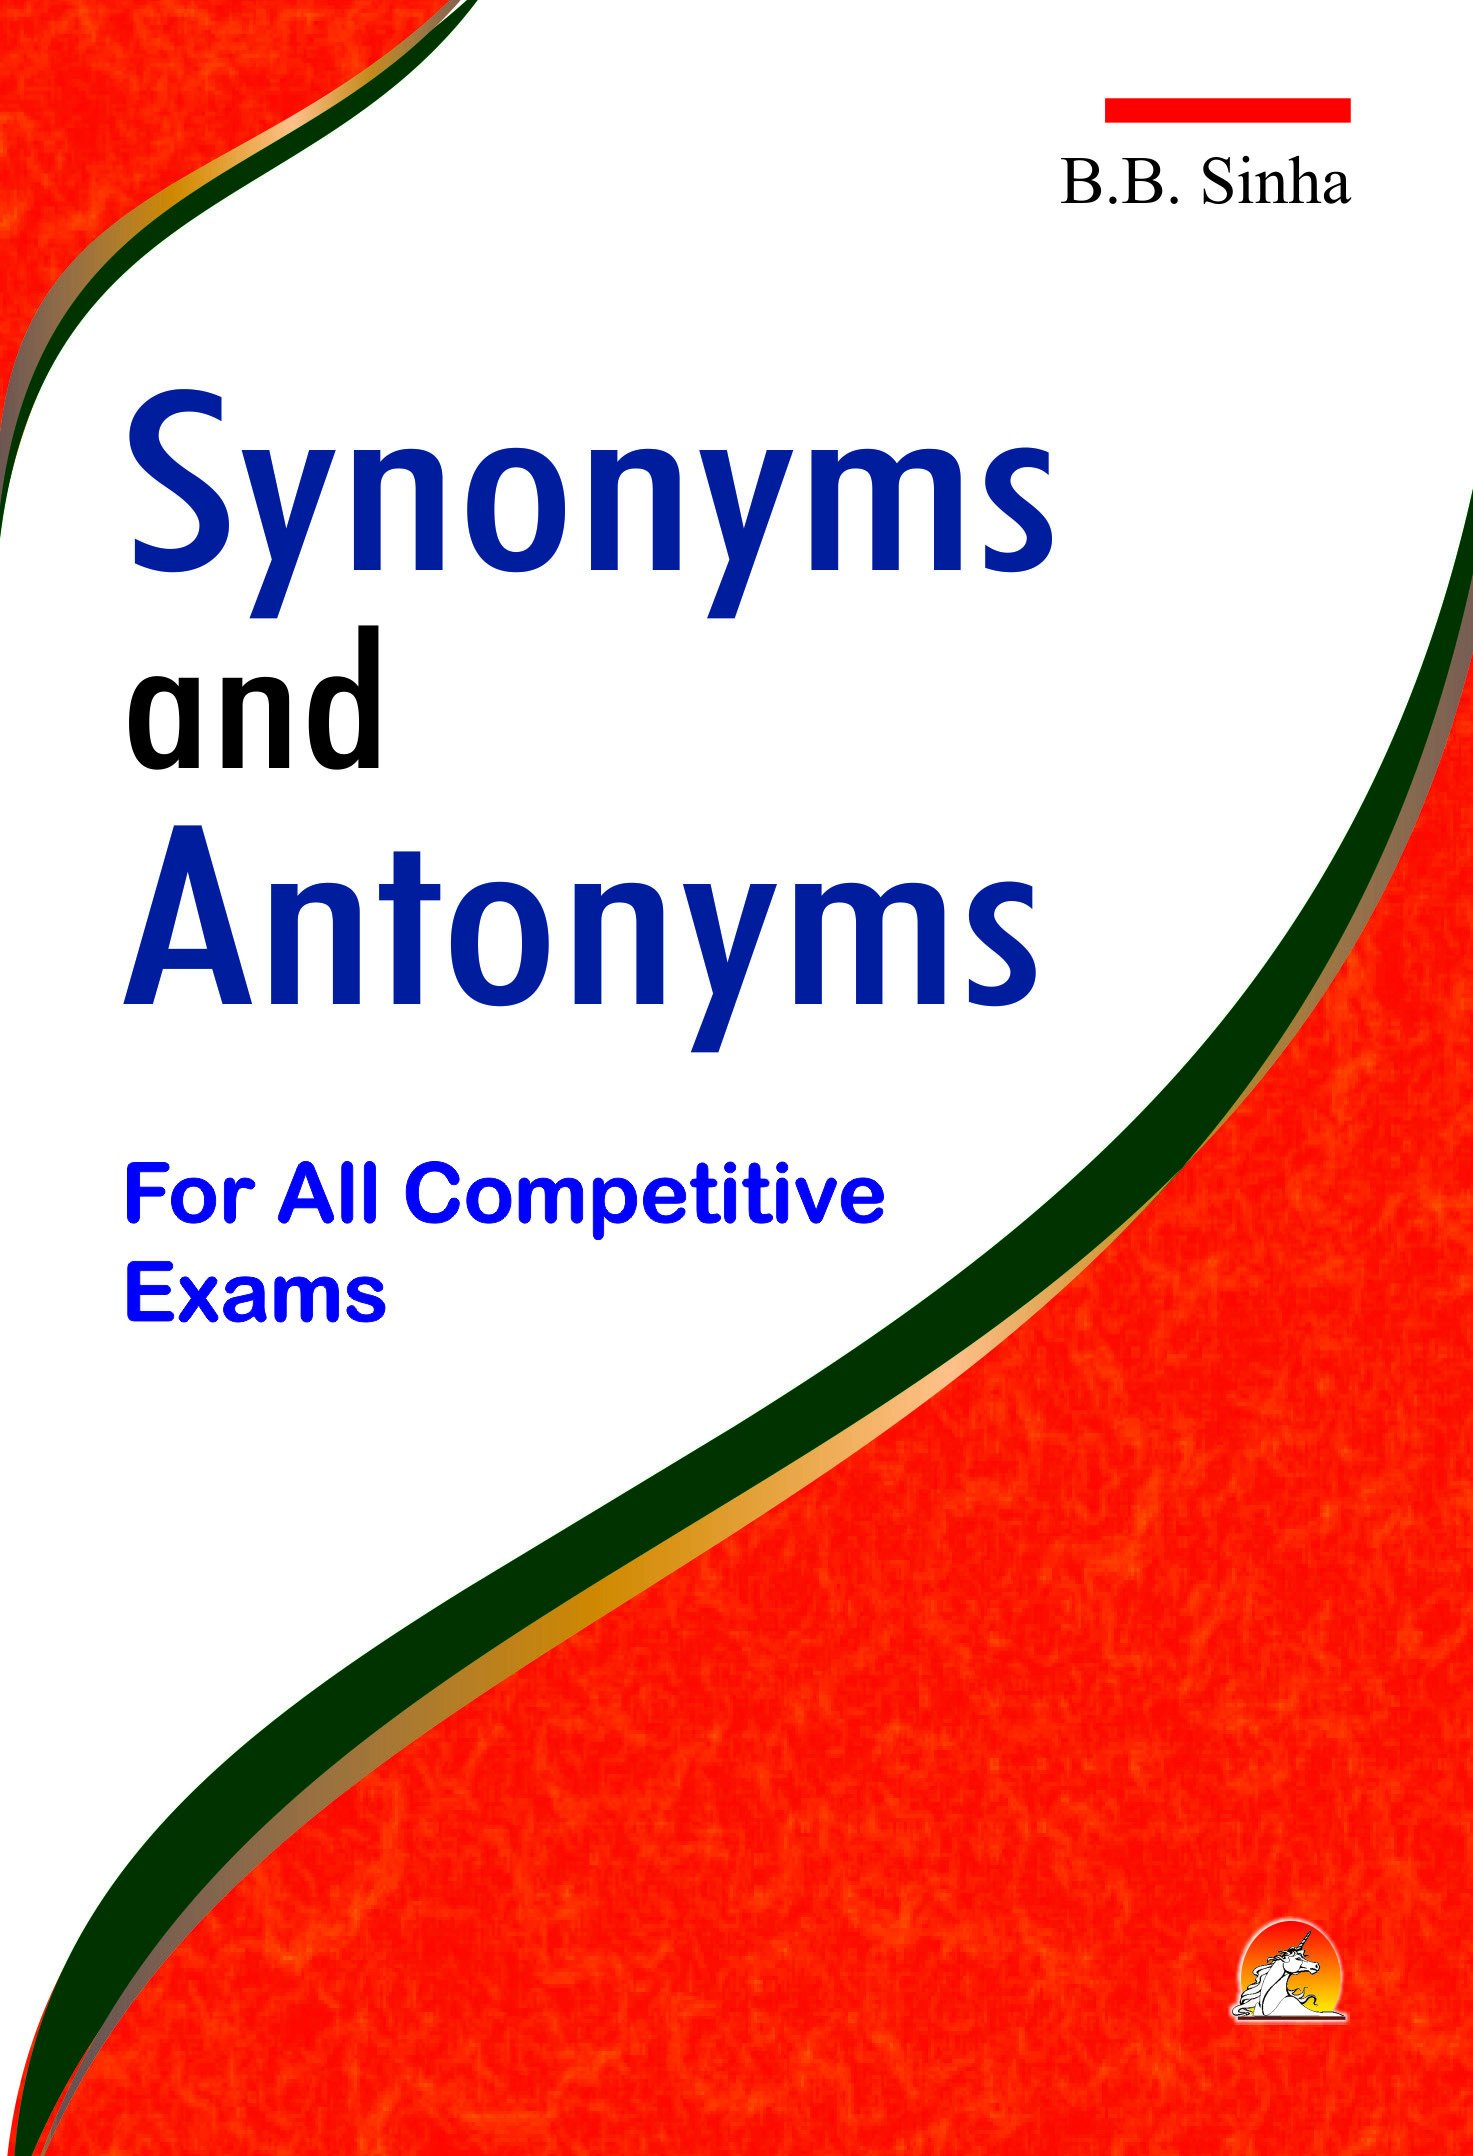 Worksheet Synonym Of Helping buy dictionary of synonyms and antonyms for all competitive exams book online at low prices in india an